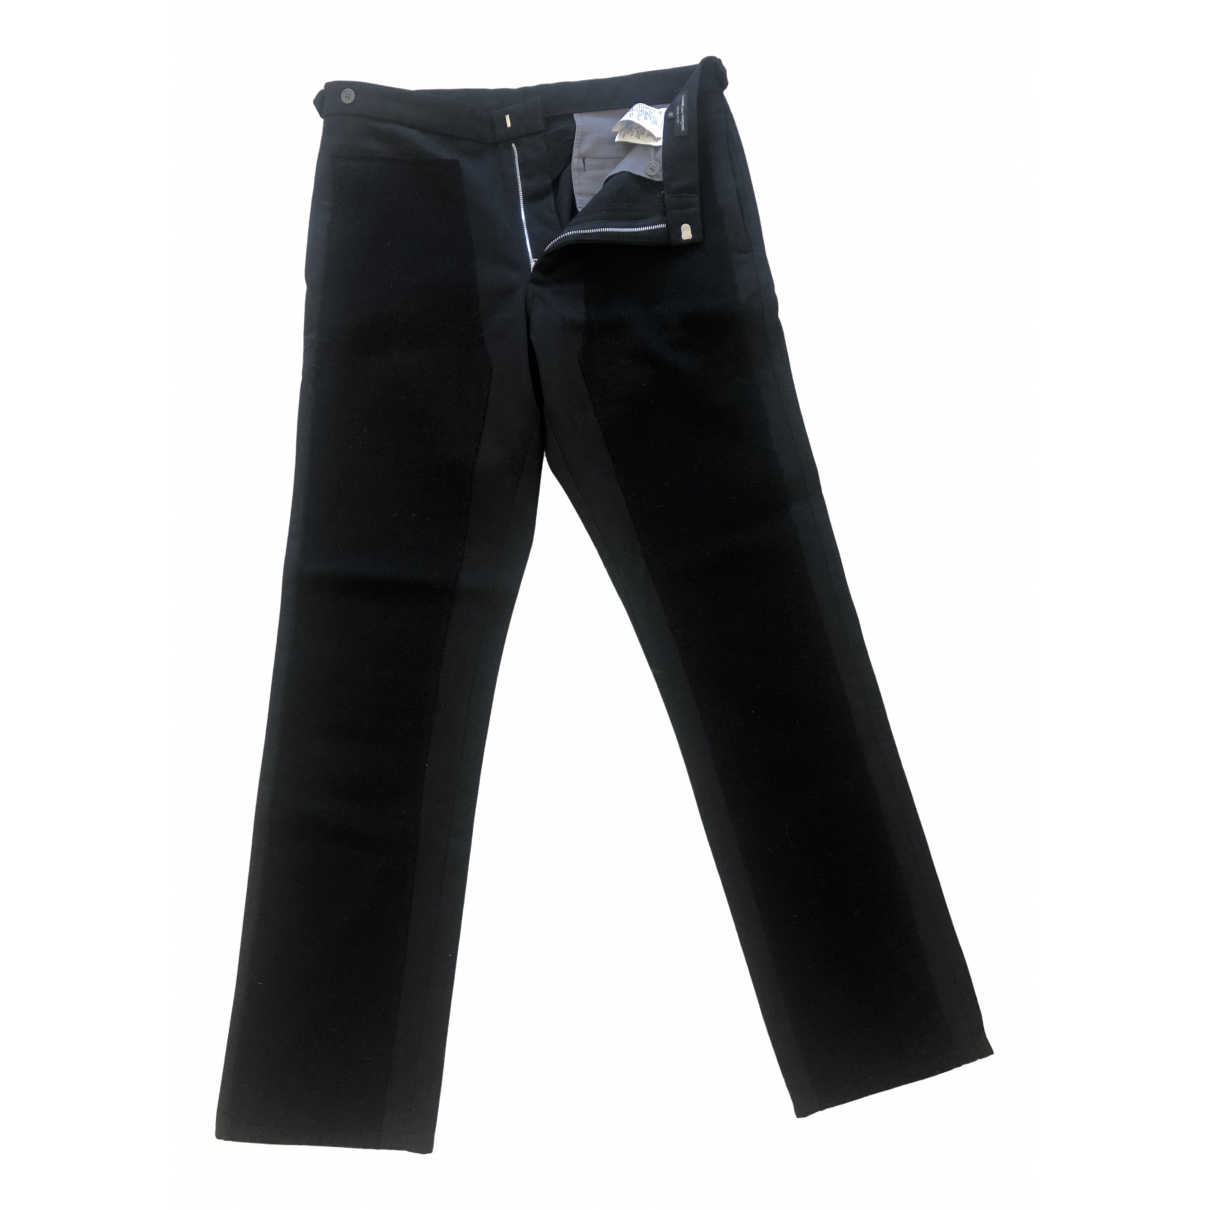 Comme Des Garcons \N Black Trousers for Men M International